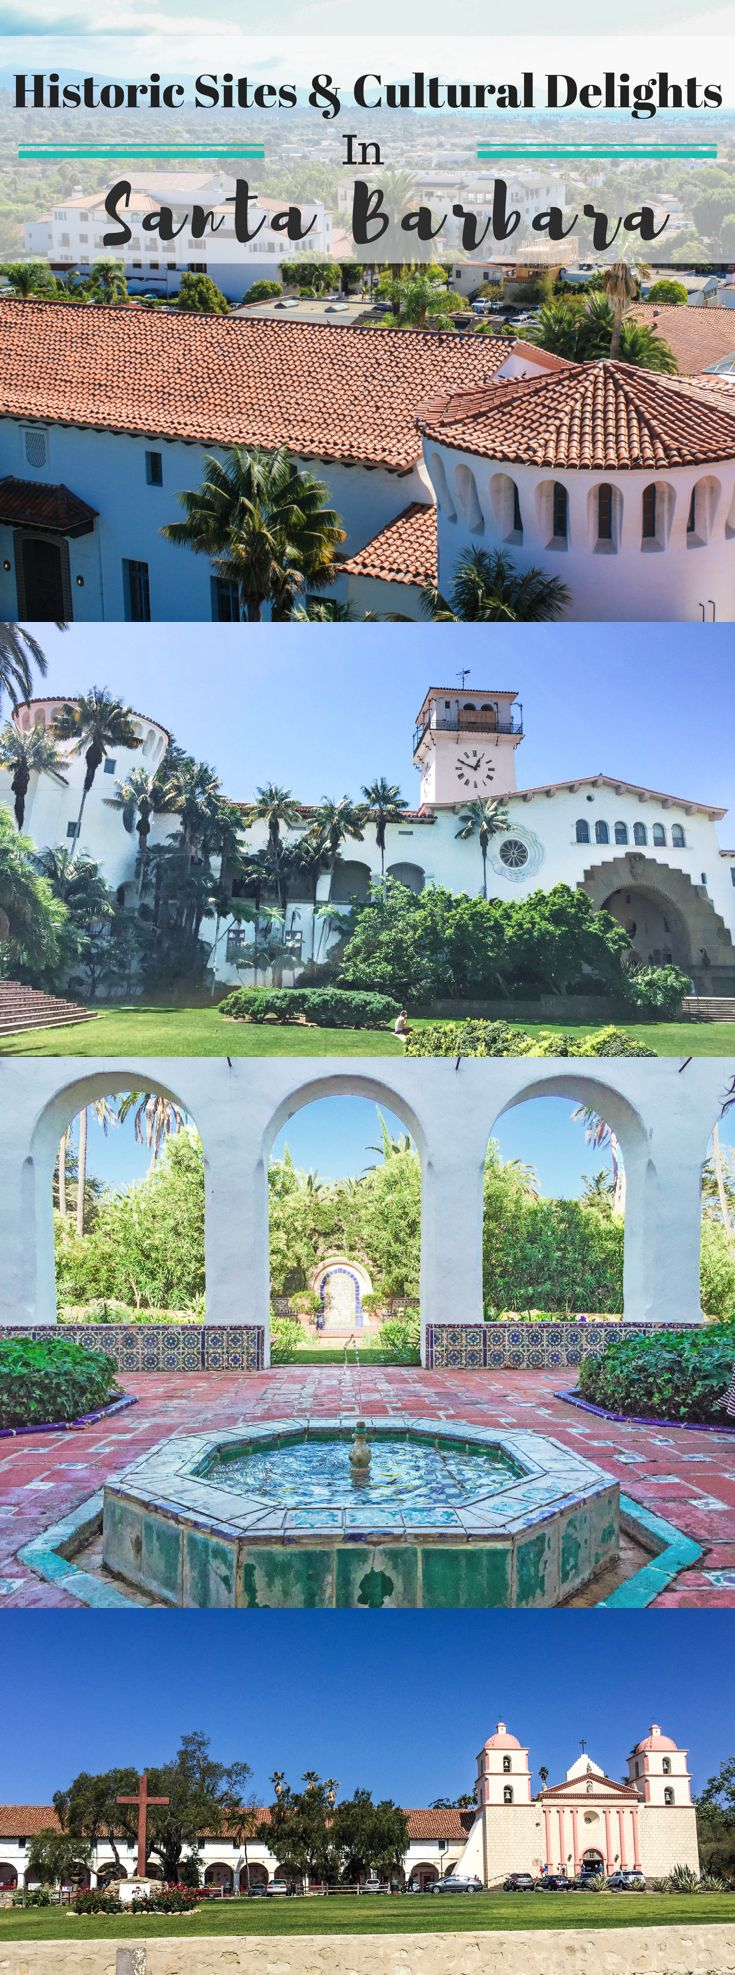 Experience historical sites and cultural delights in Santa Barbara, California -- form the mission and courthouse to Casa Del Herrero and Lotusland.